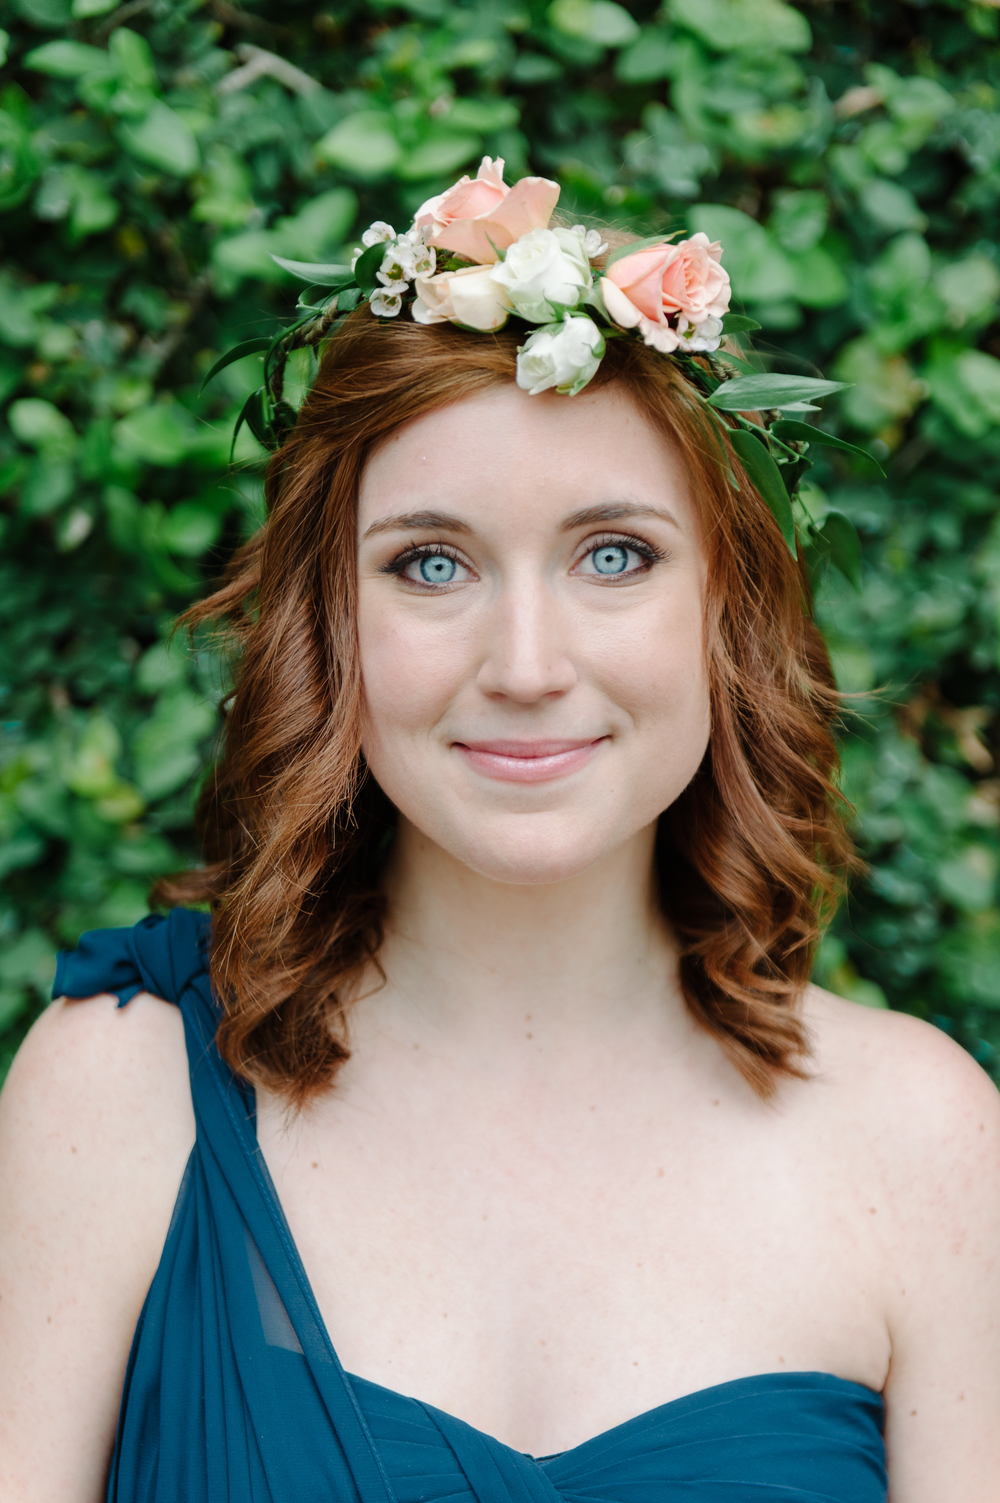 delray-beach-flower-crown.jpg